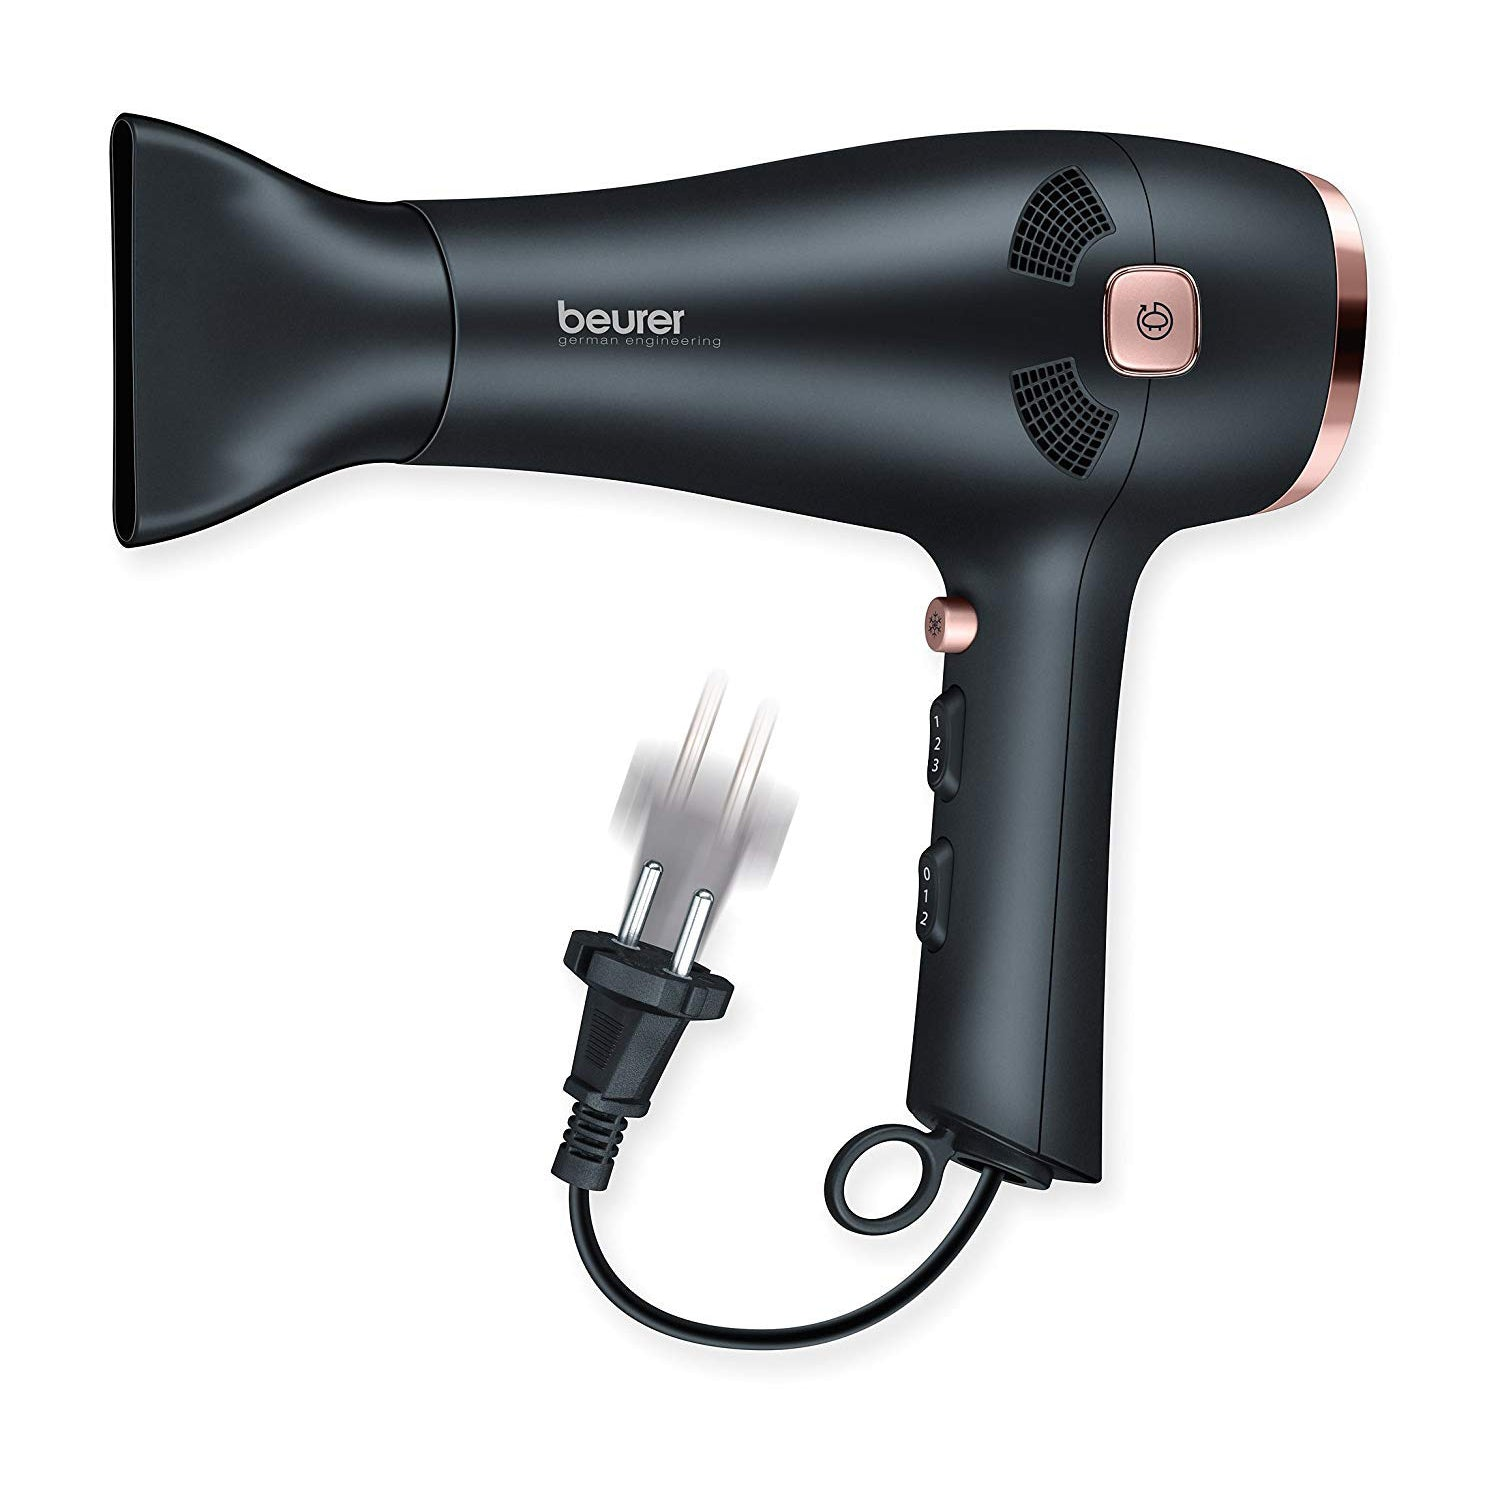 Beurer HC 55 Hair Dryer